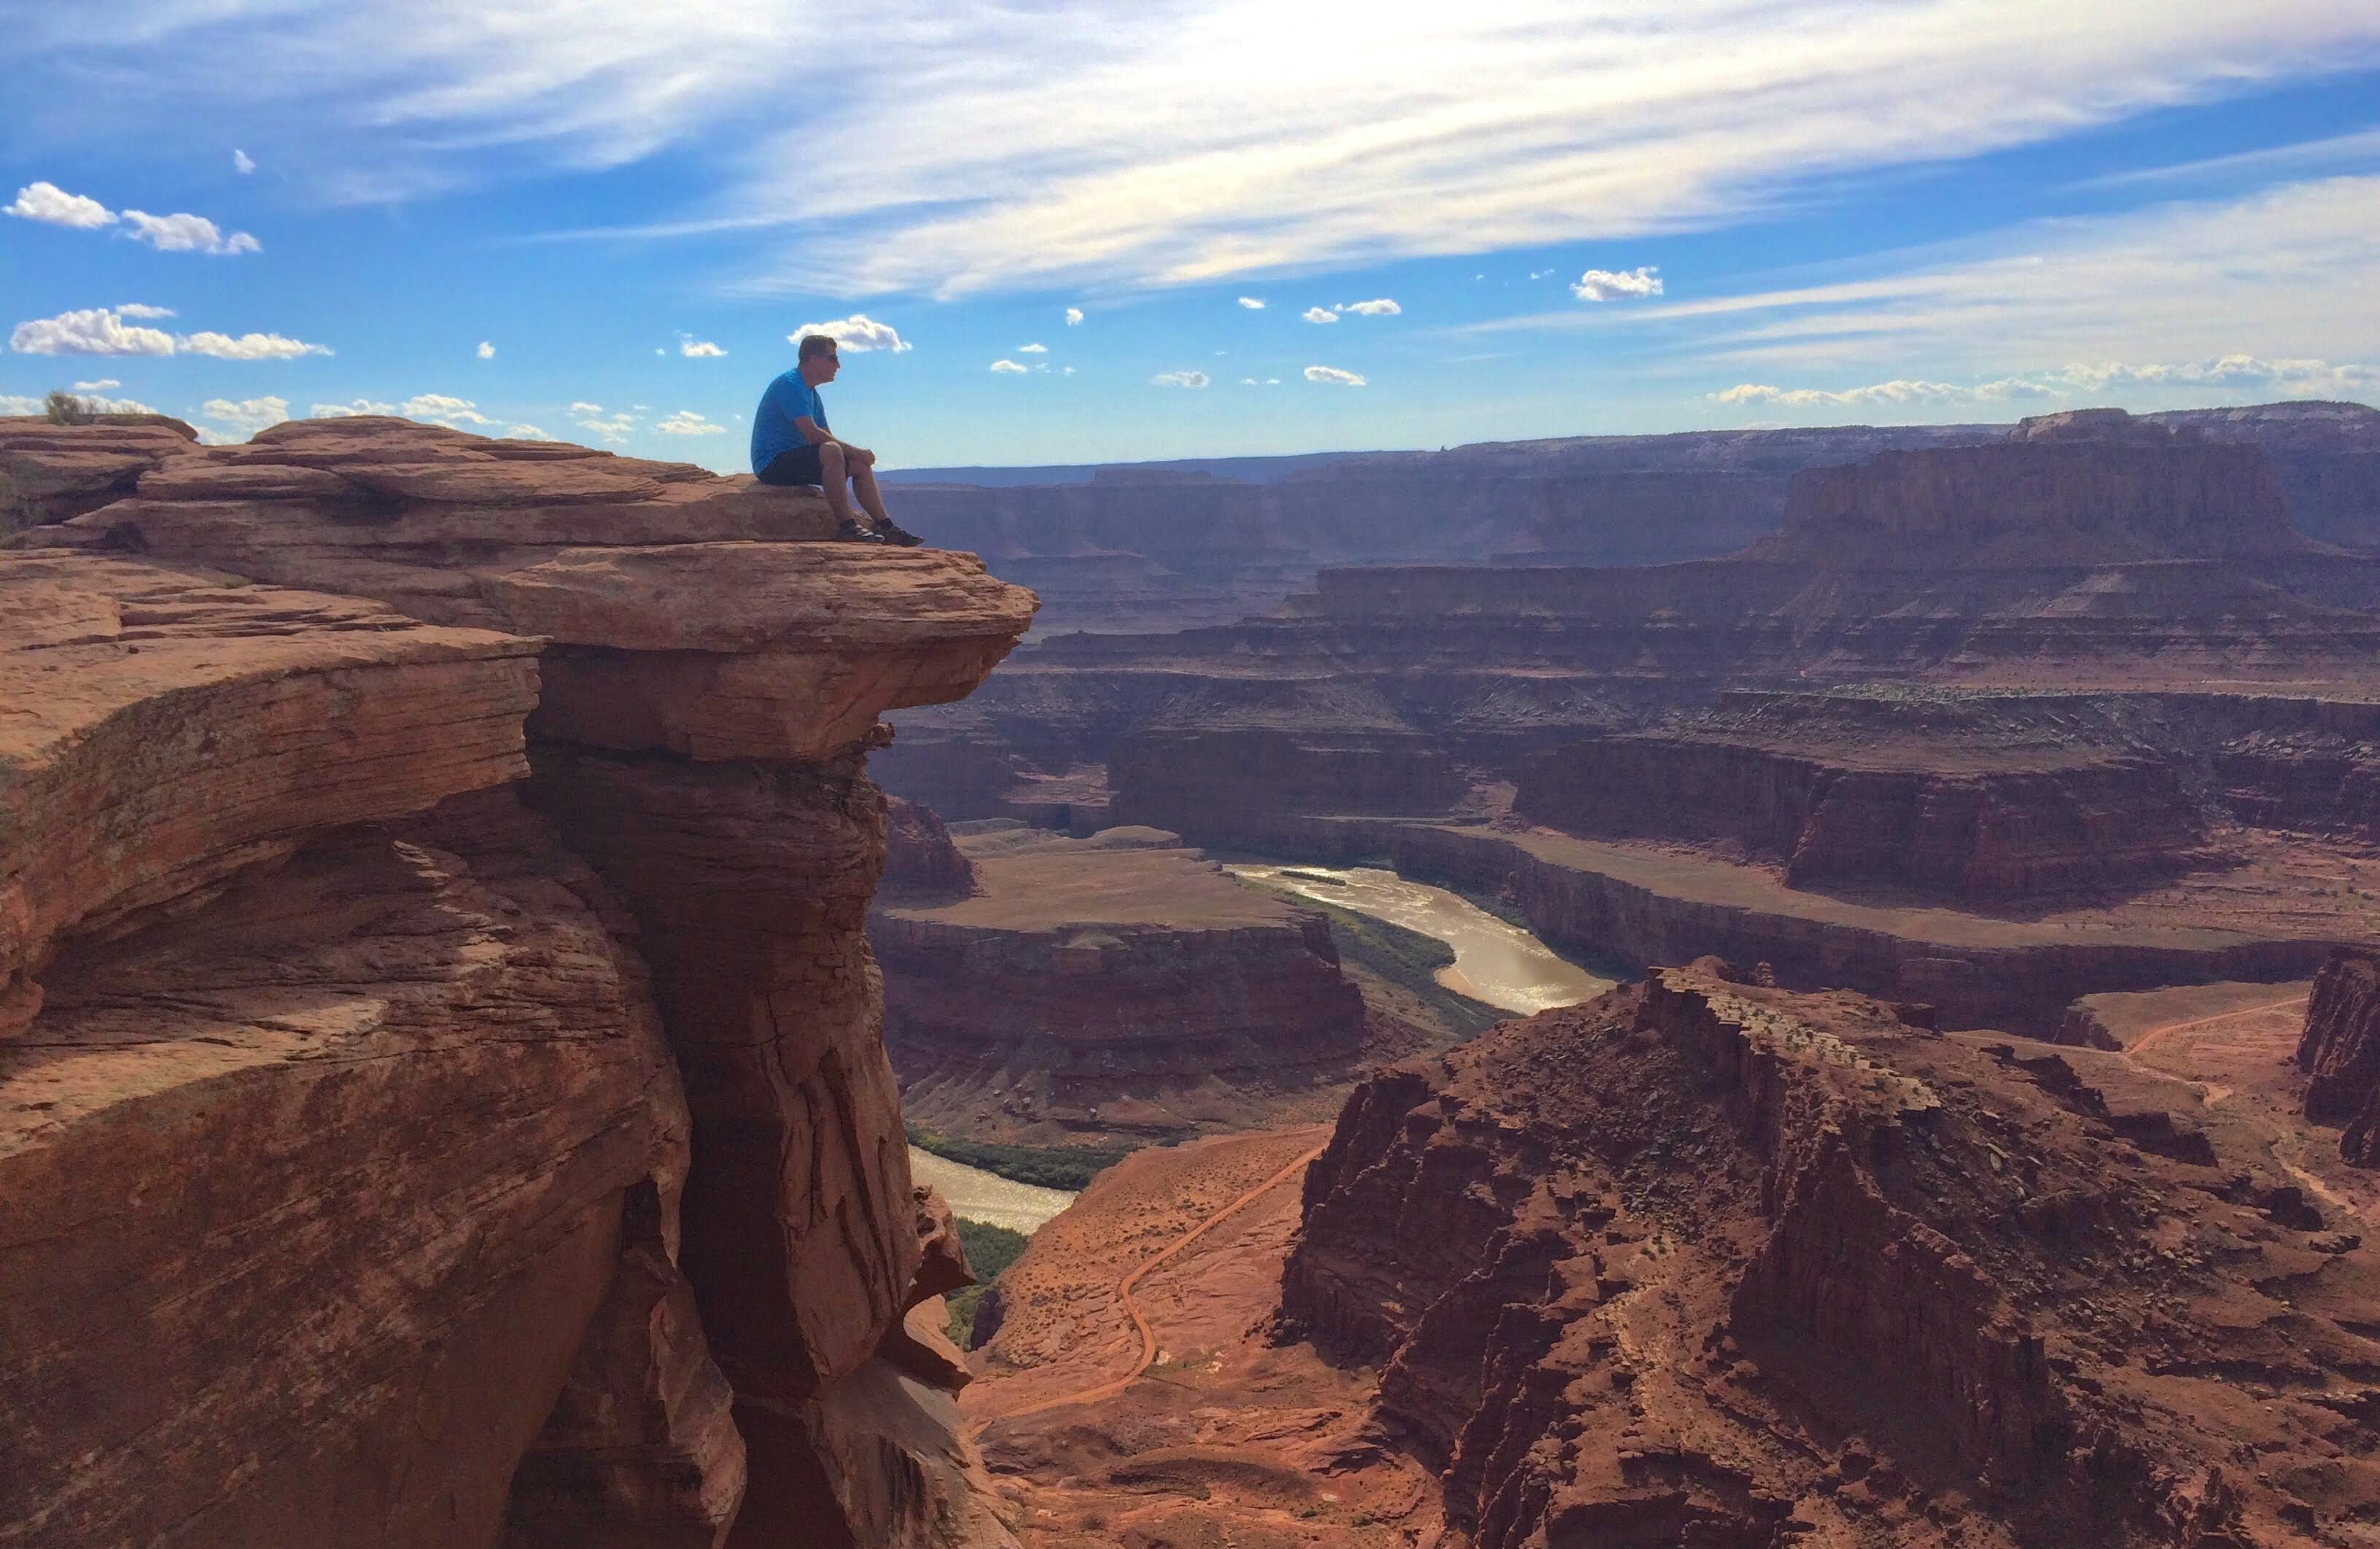 Person sitting on edge of cliff overlooking Utah mountains